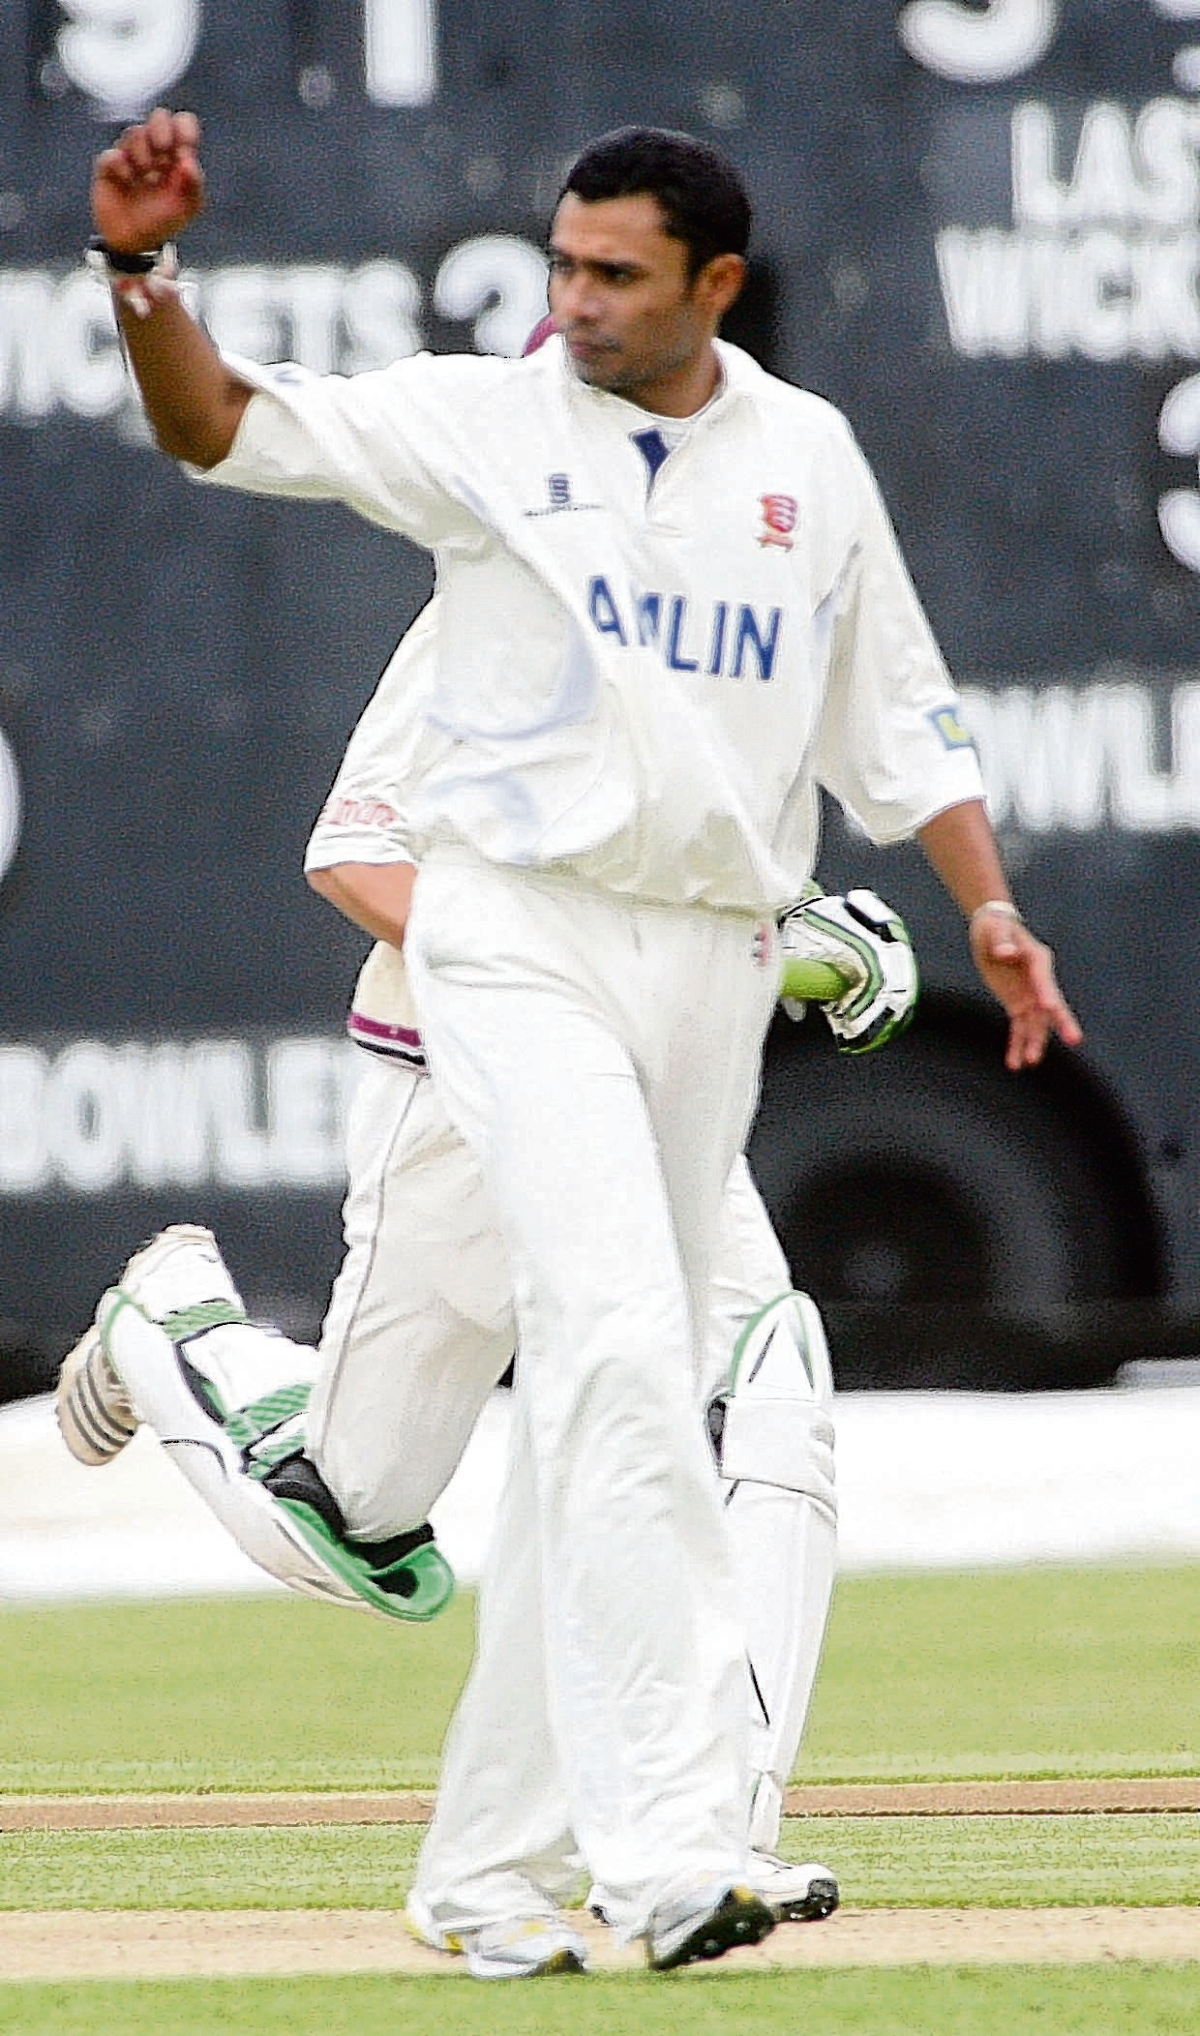 Danish Kaneria playing for Essex